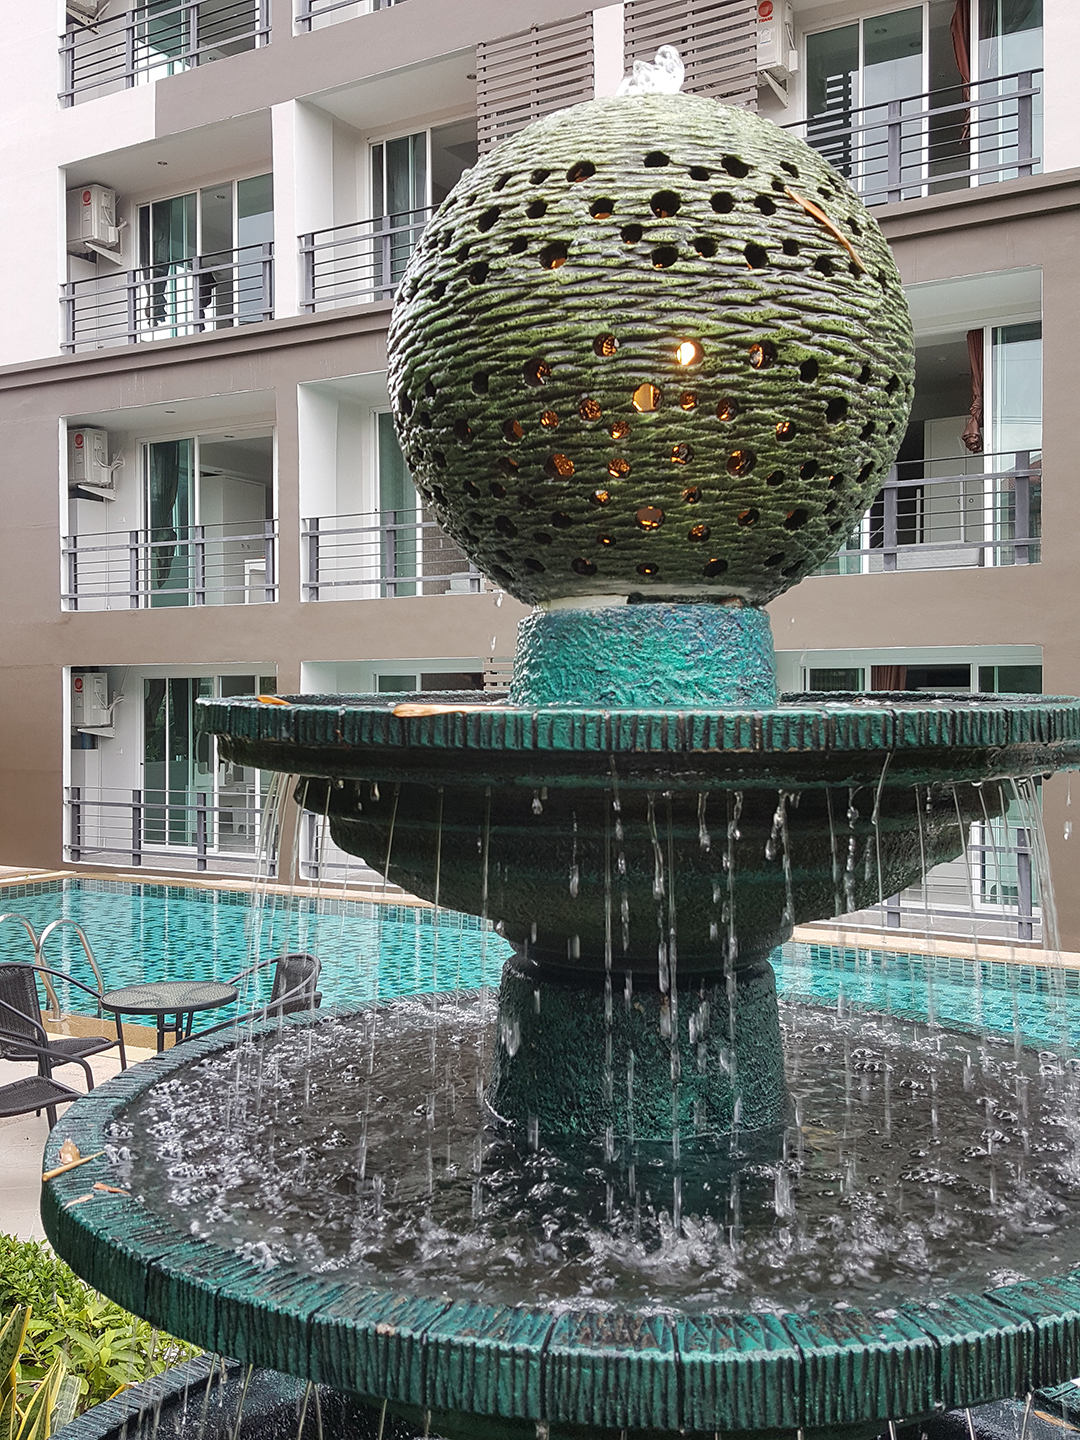 https://retreat-resort.com/images/retreat-resort/our-resort/OurFountain.jpg